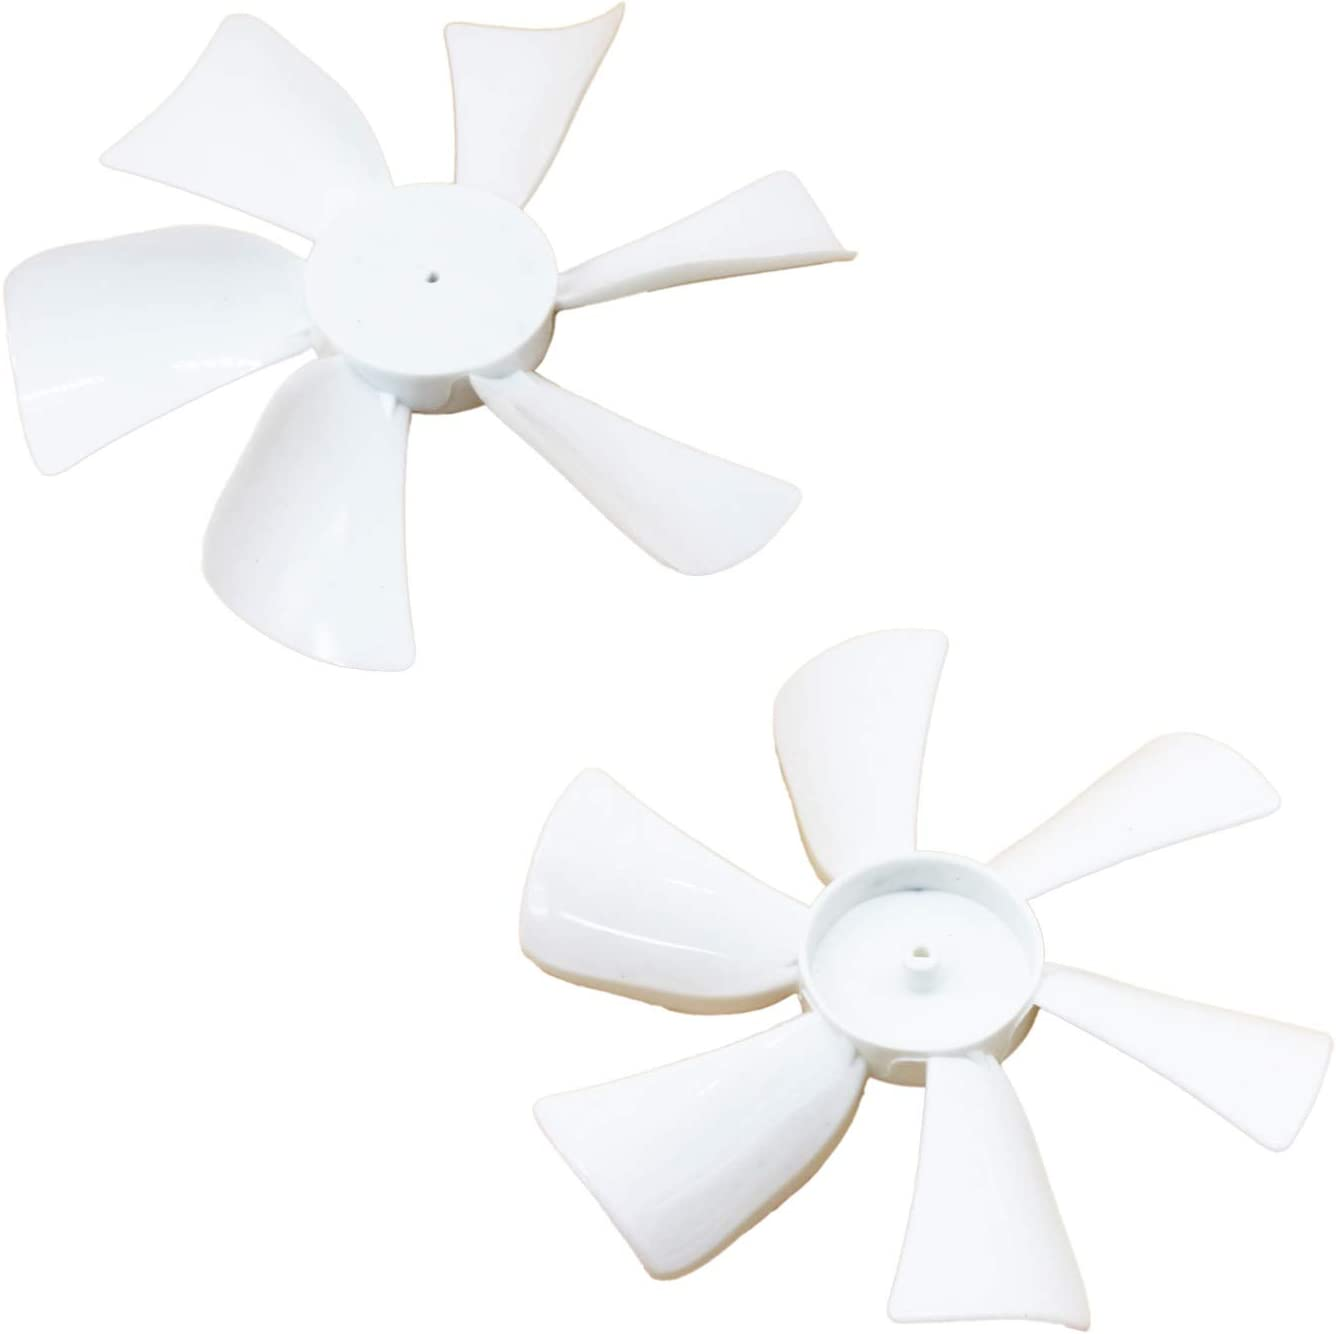 X-Haibei 2 Pack RV Fan Blade Replacement, 1/8 inch D-Bore, 6 inch whide, White for Trailer Camper Roof Vent